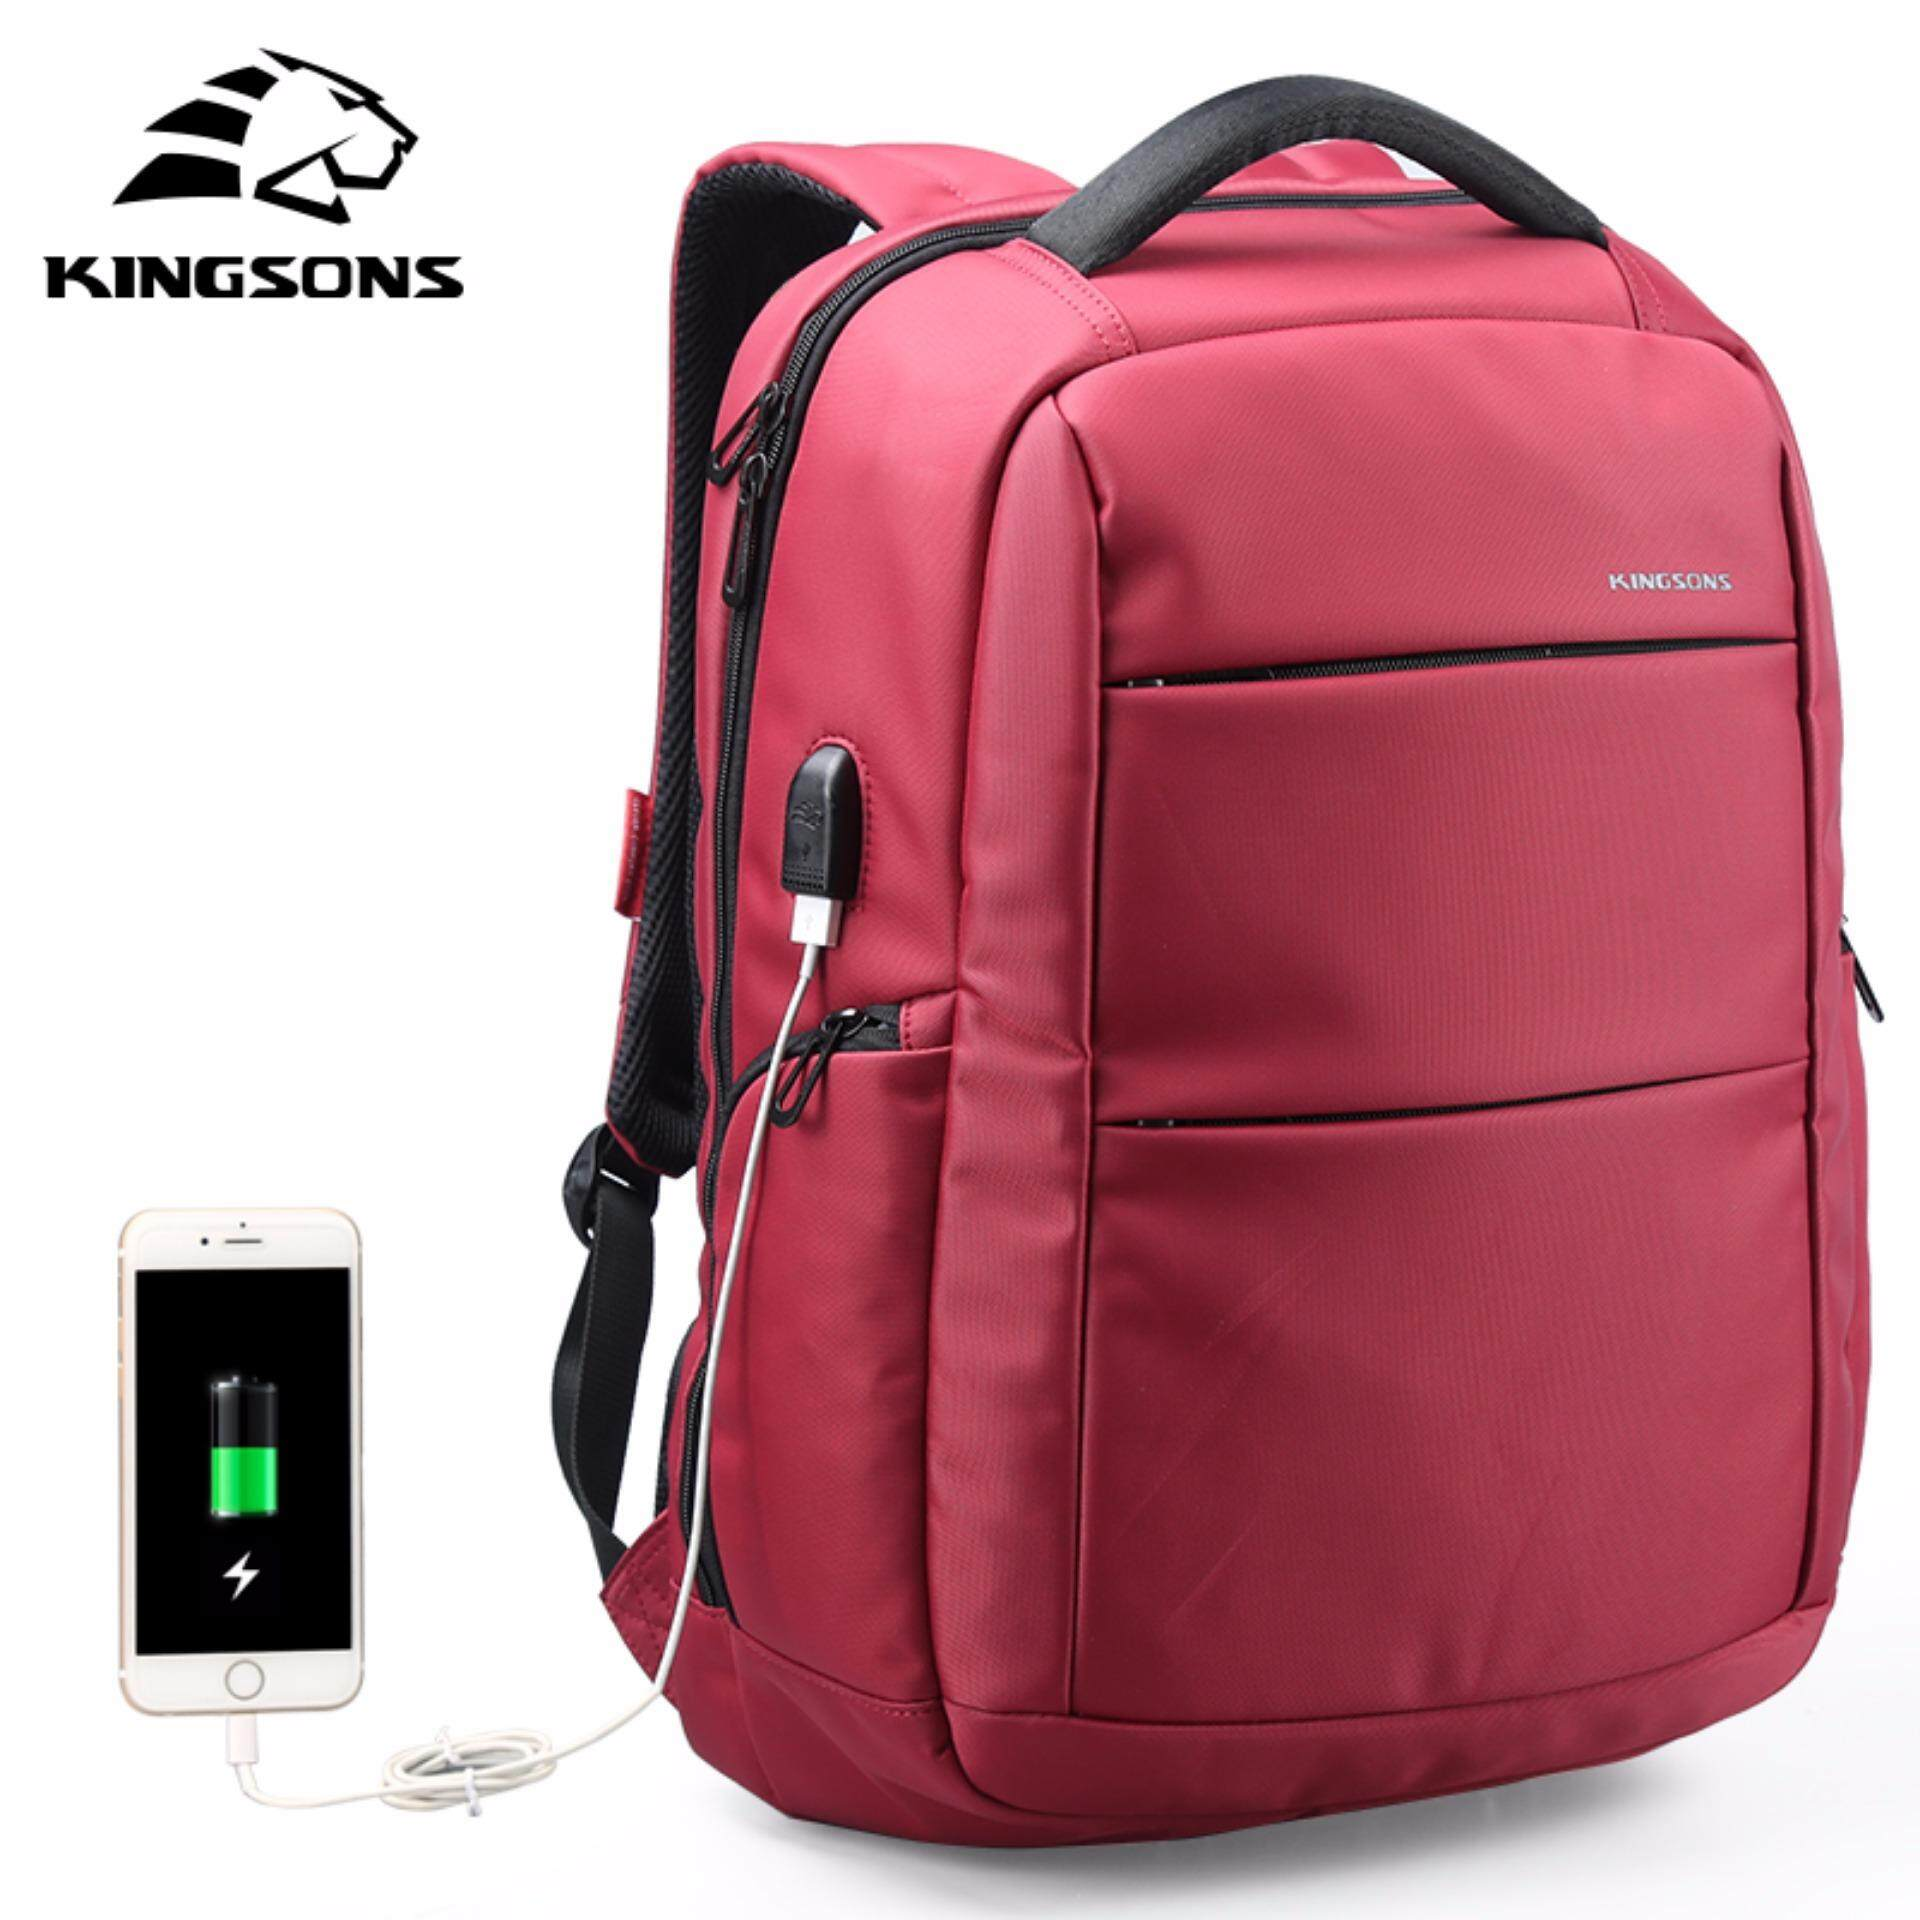 B Bag Tas Ransel Korean Style For Laptop 156 Inch Daftar Harga Eastpak Padded Pakr Backpack Black Kingsons Bags Philippines Price List Backpacks Sale